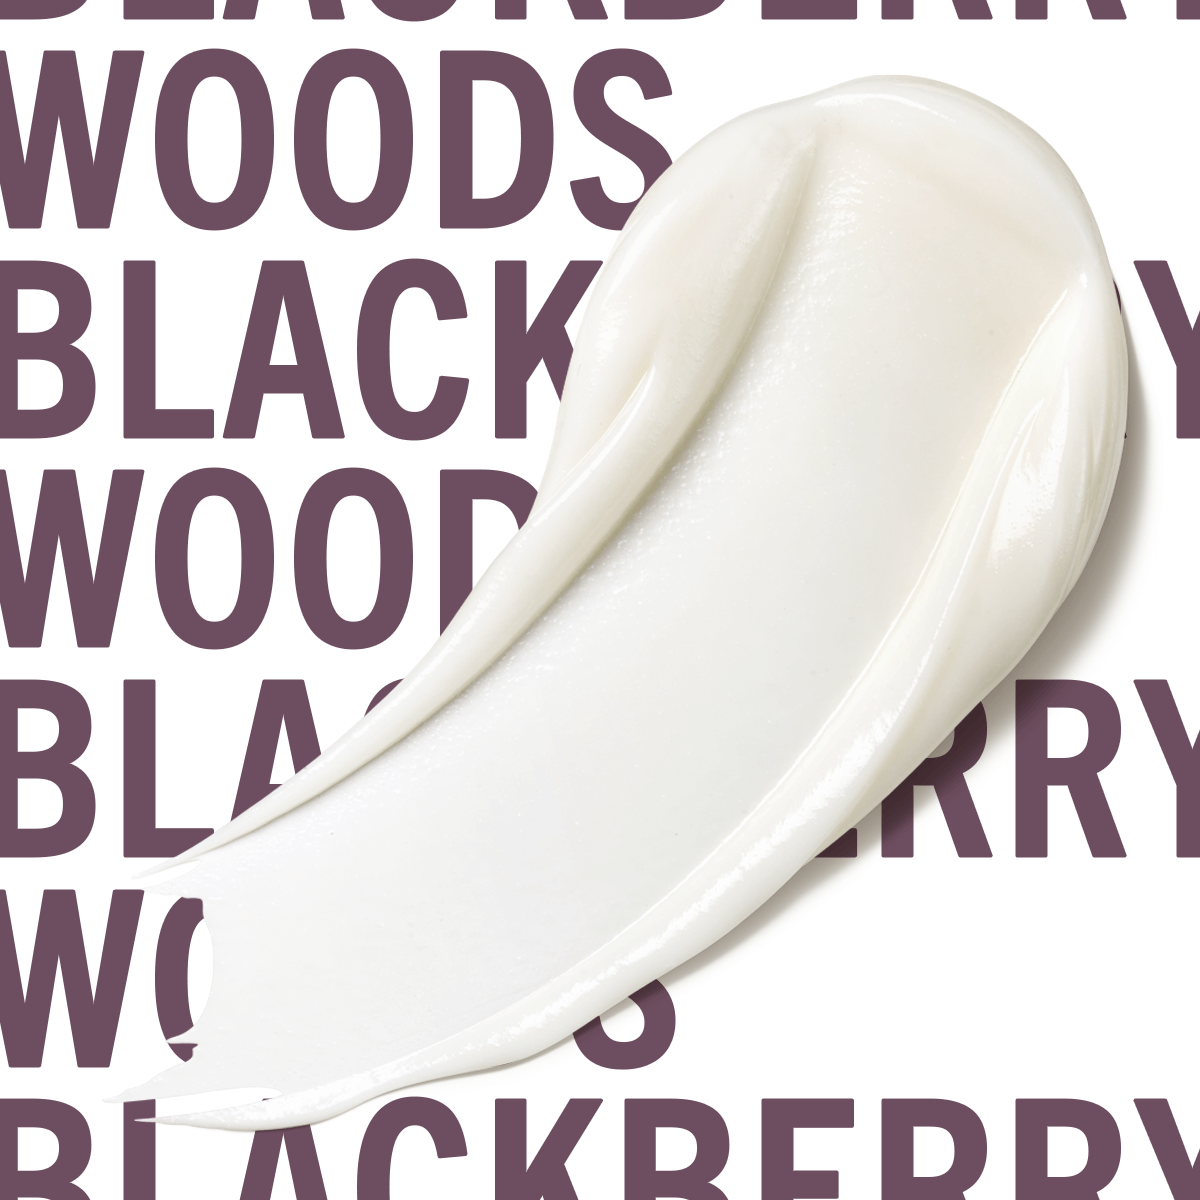 Blackberry Woods 250ml Hand & Body Lotion